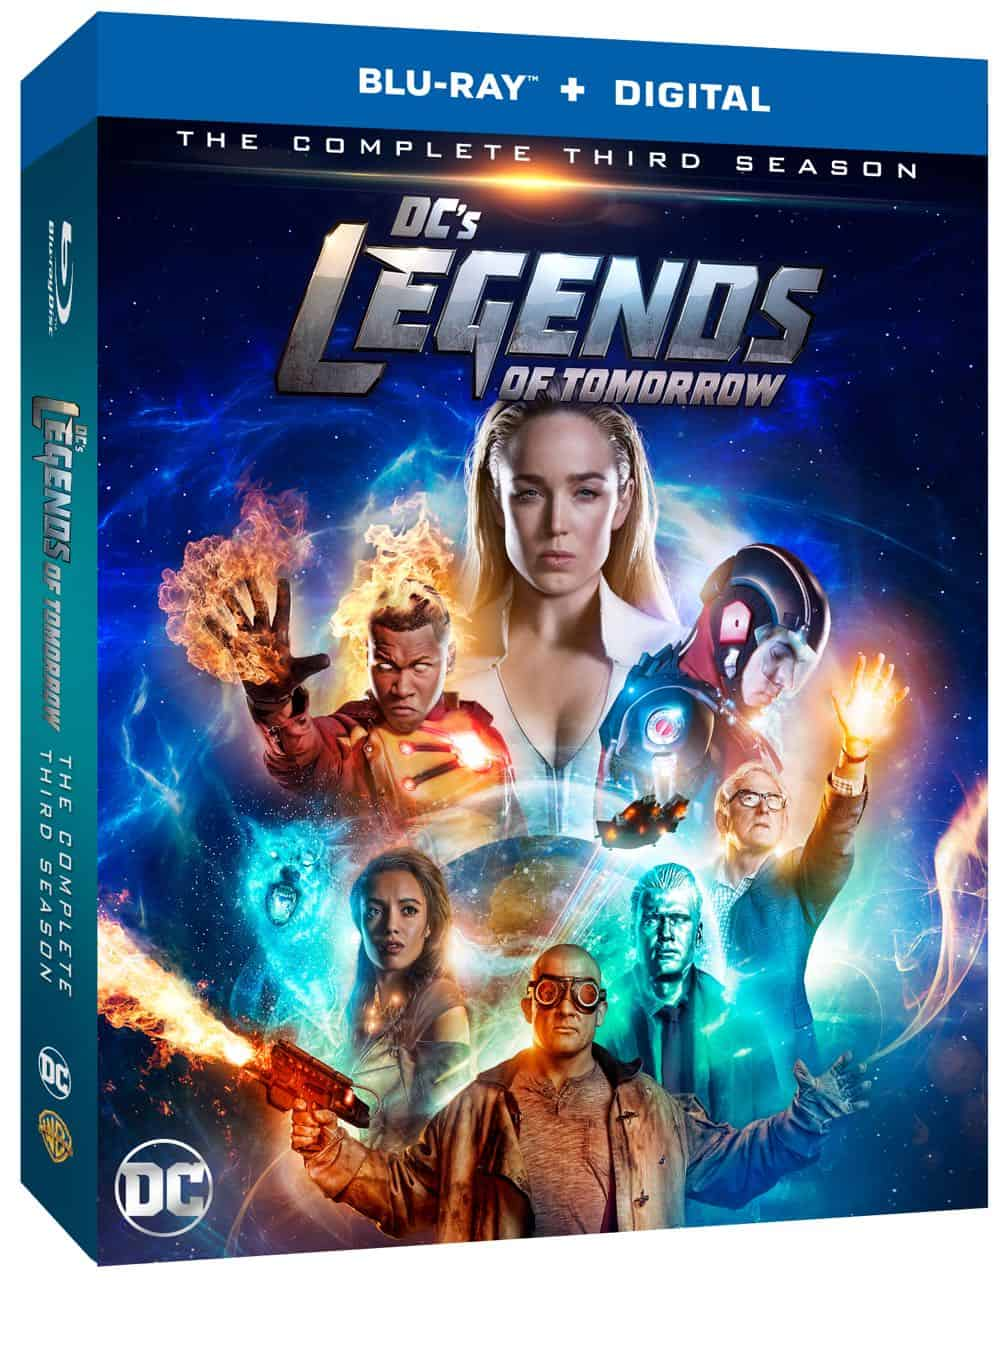 DC's Legends Of Tomorrow Season 3 Blu-ray